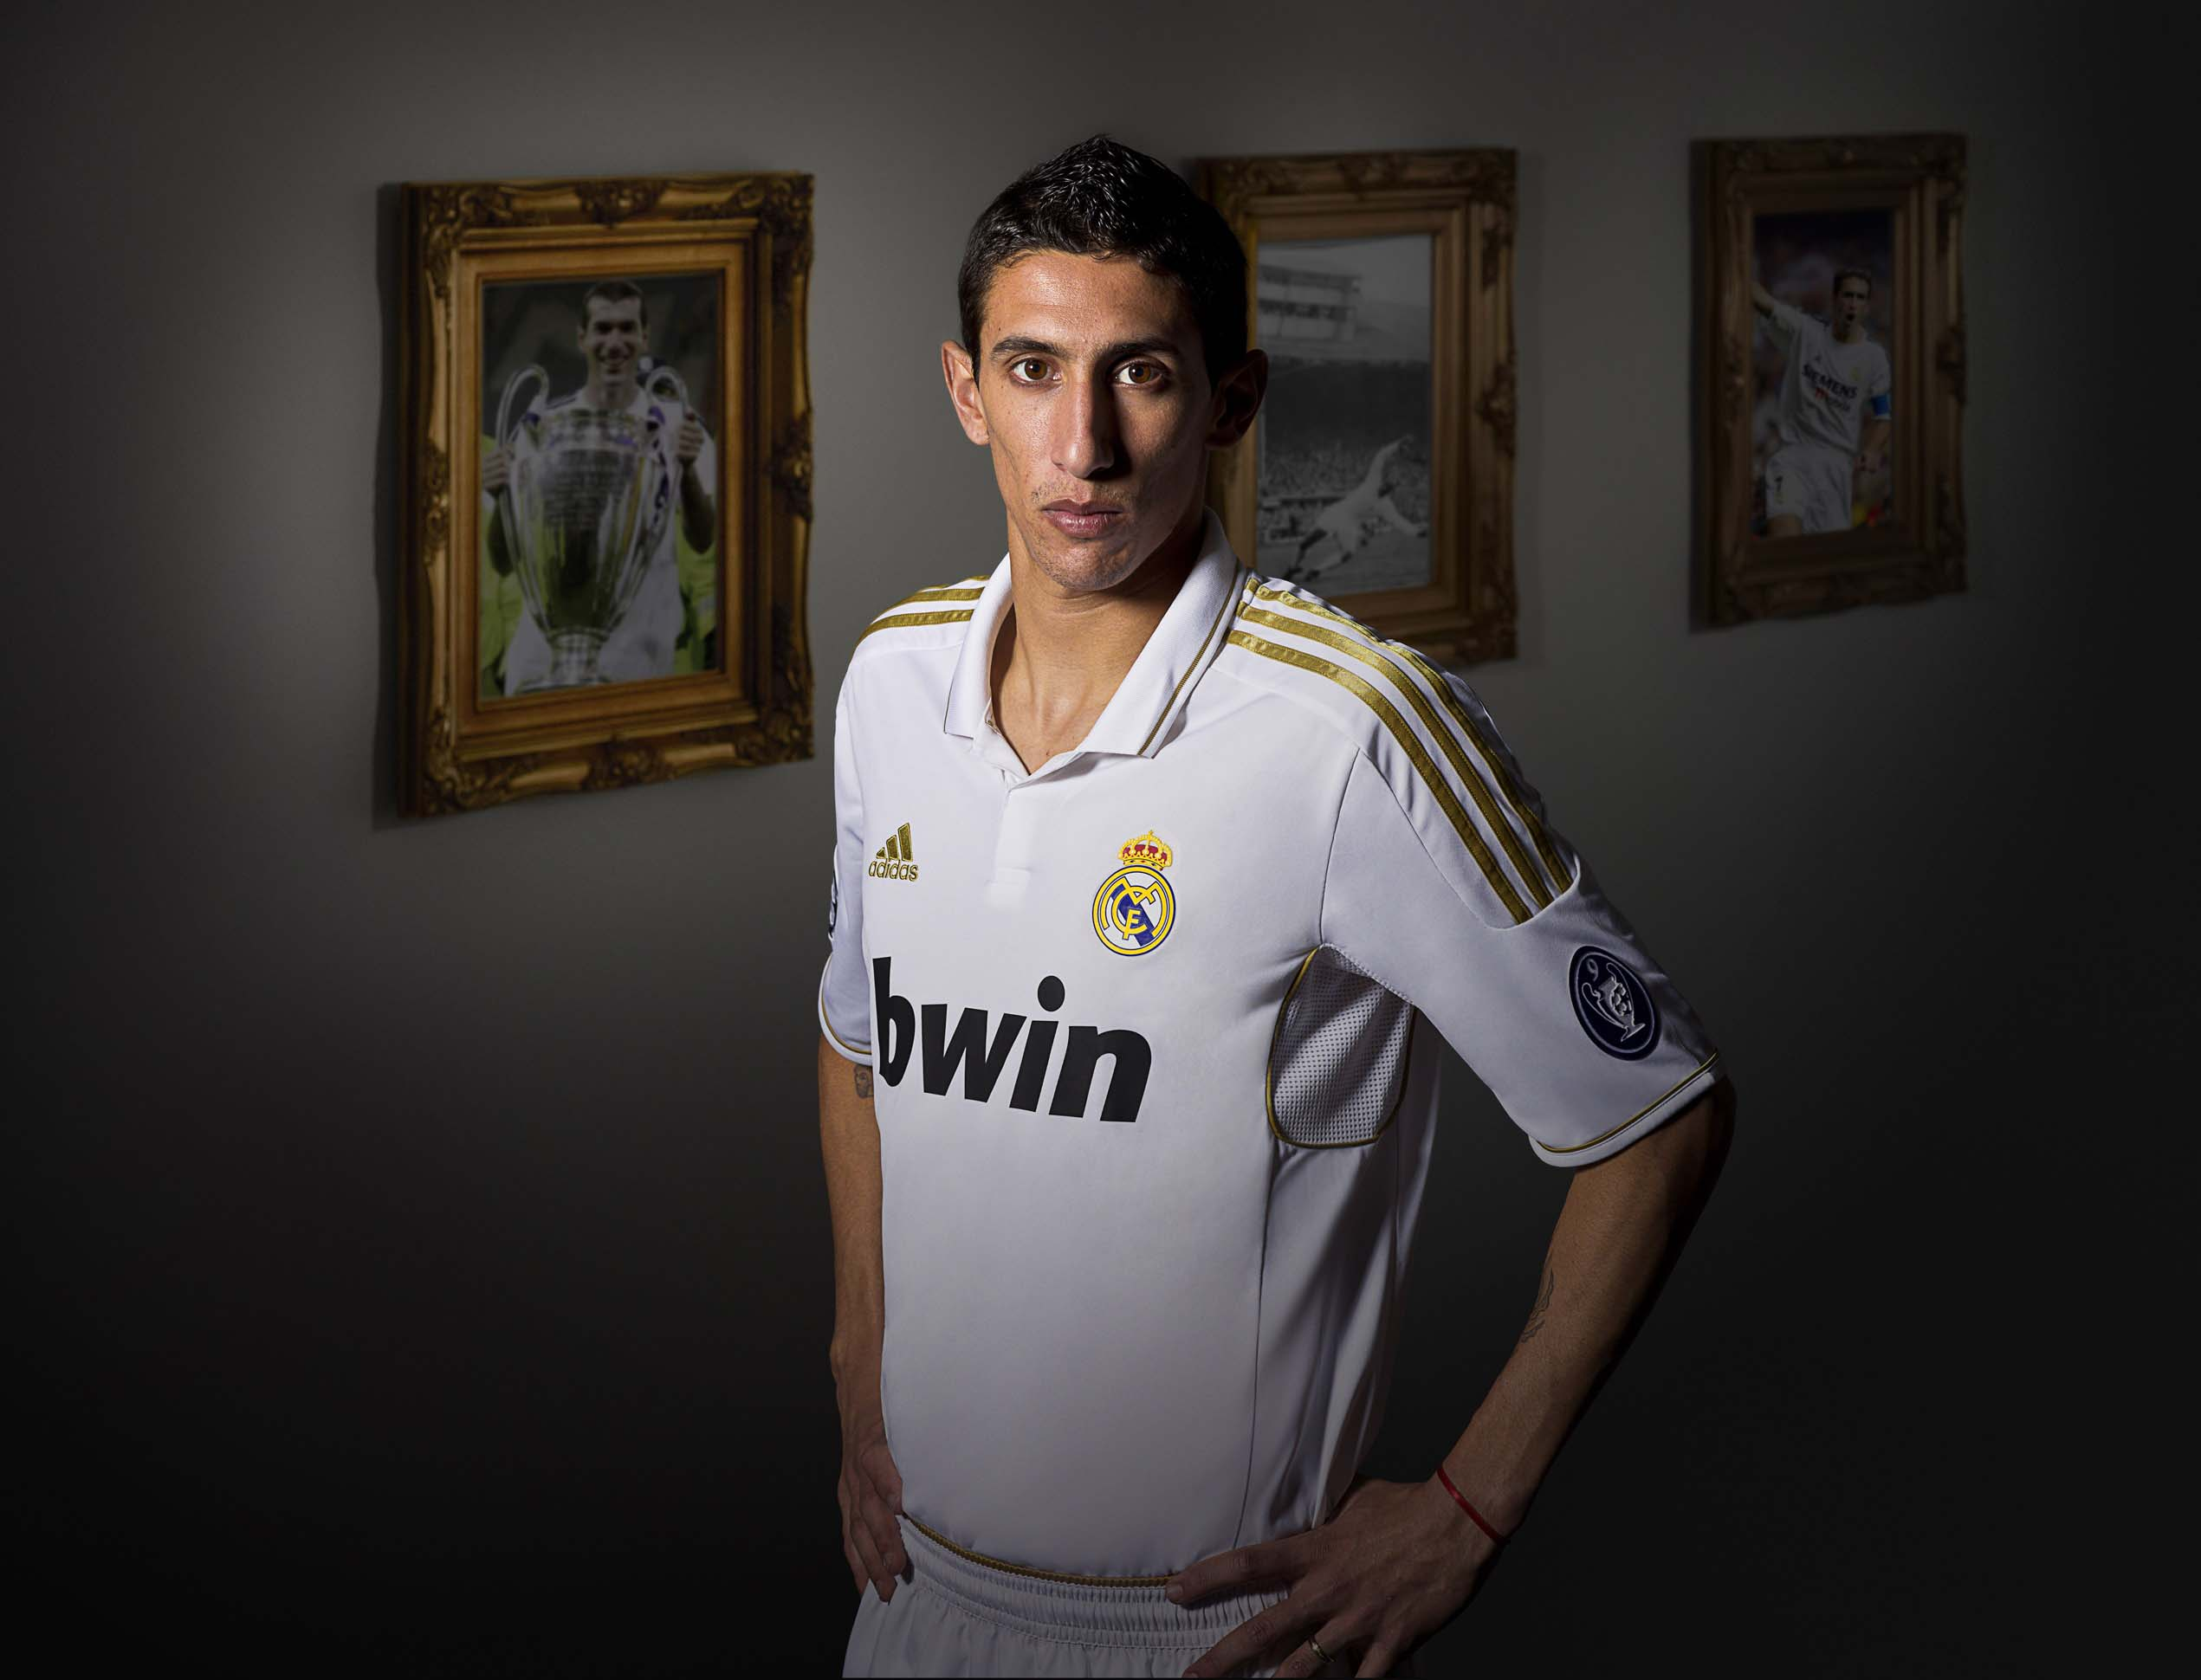 Pictures  A Look At The New Real Madrid Kit For The 2011 12 Campaign